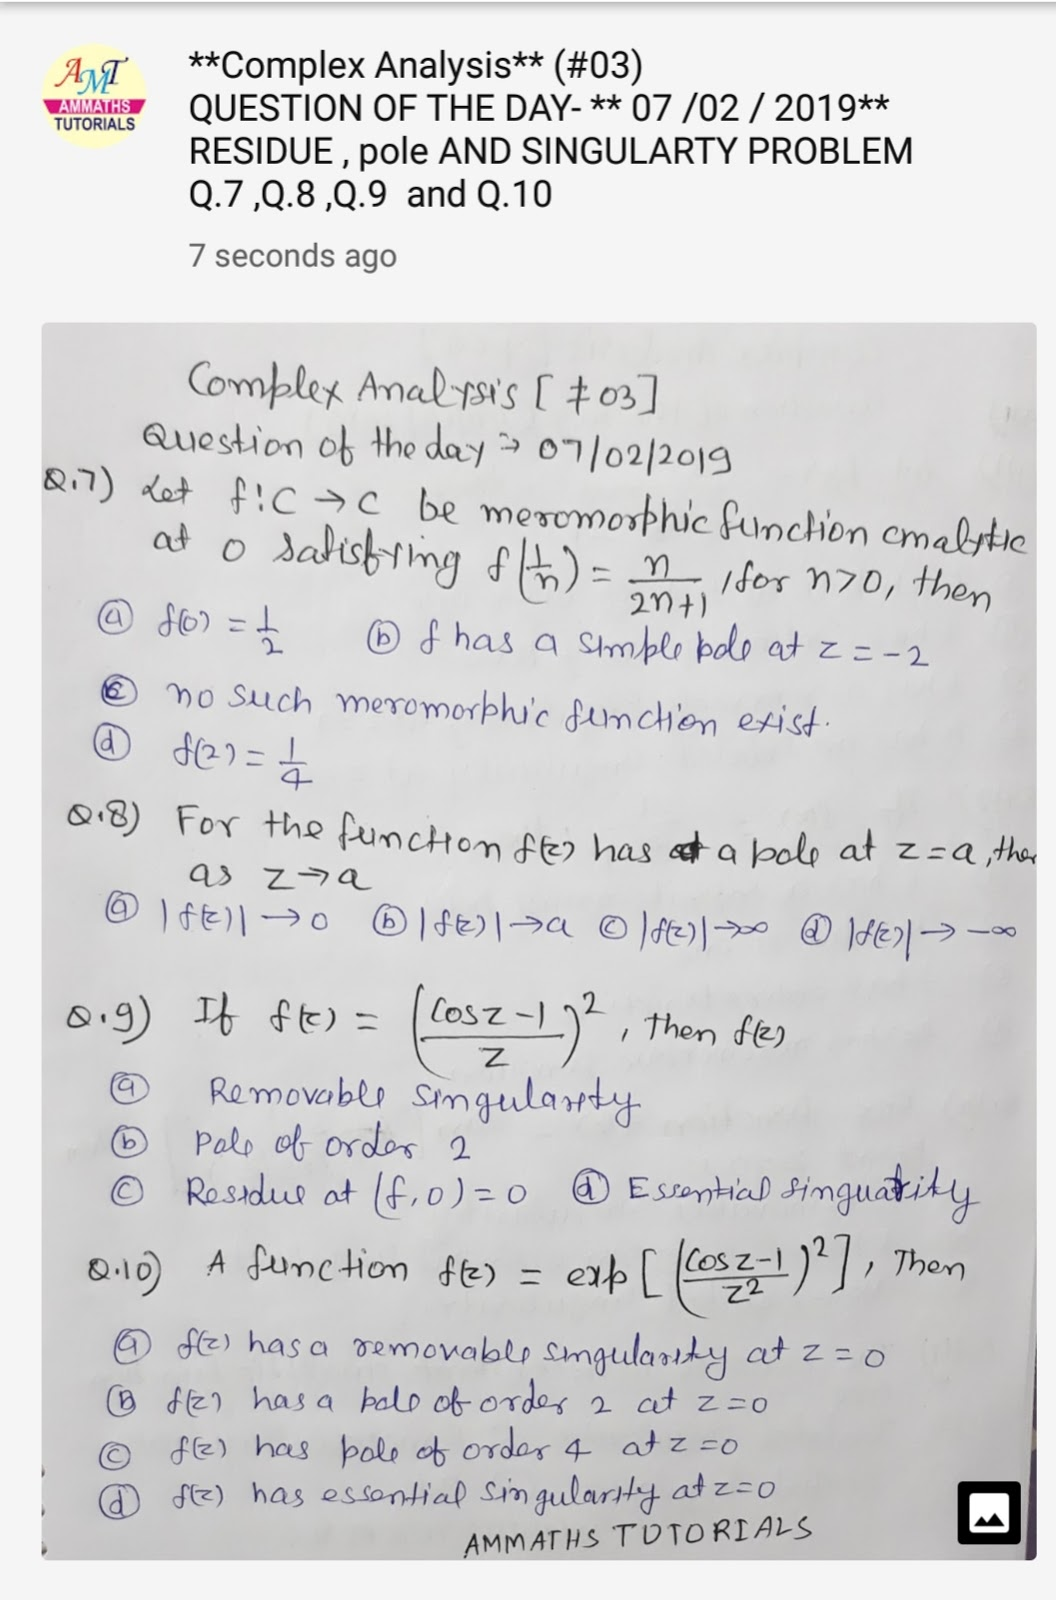 AMMATHS TUTORIALS : #03 Complex Analysis - QUESTION OF THE